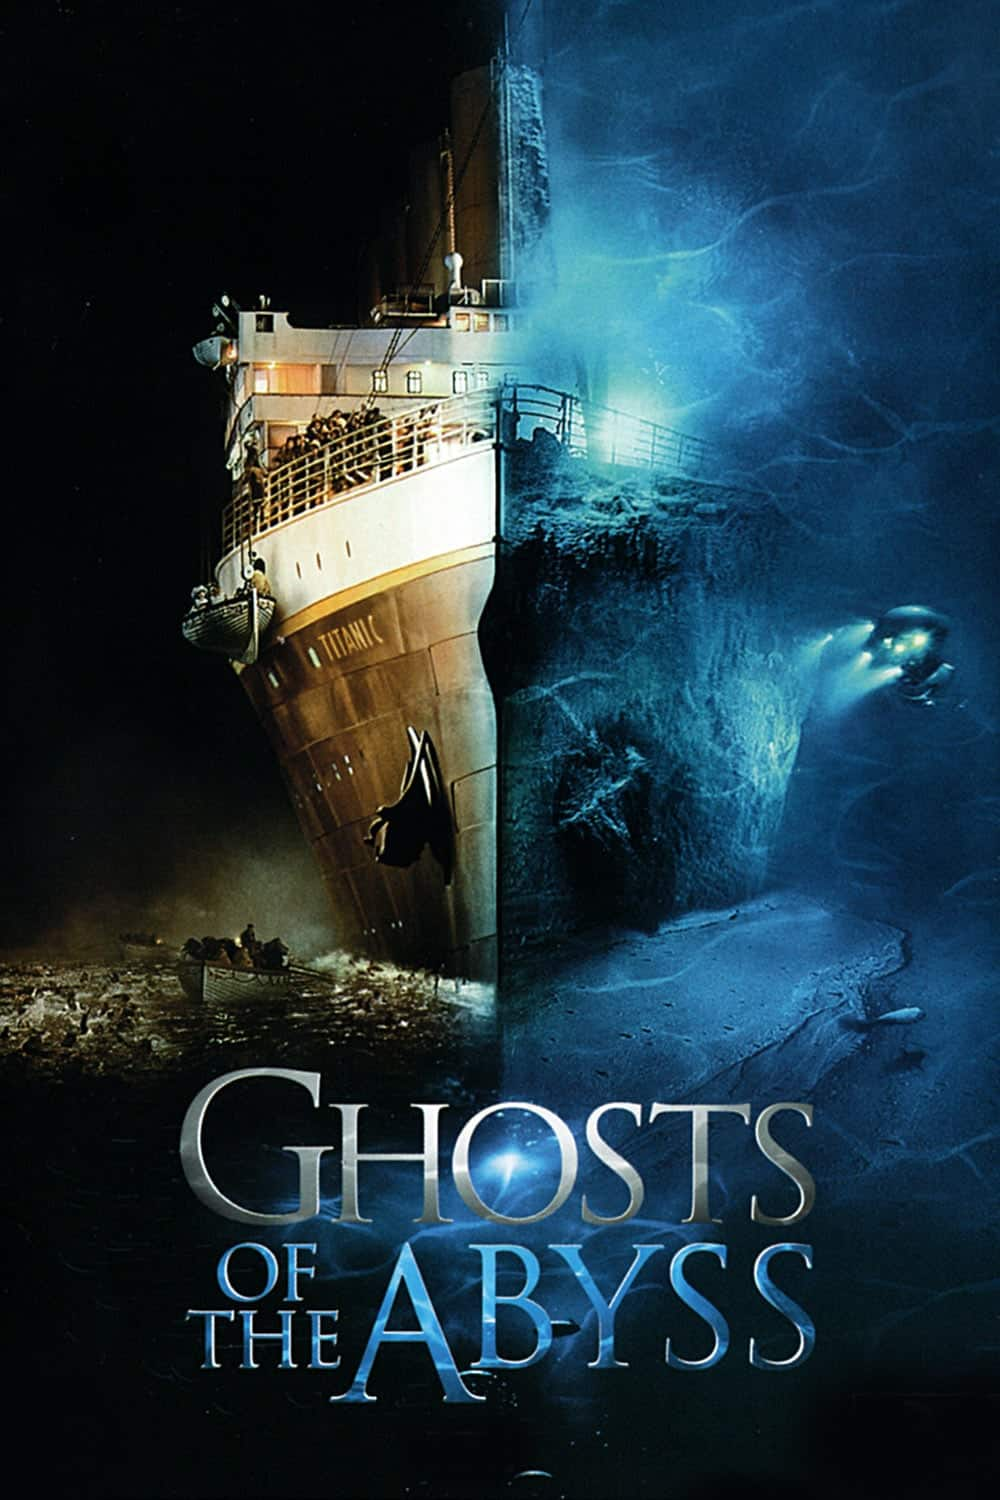 Ghosts of the Abyss, 2003